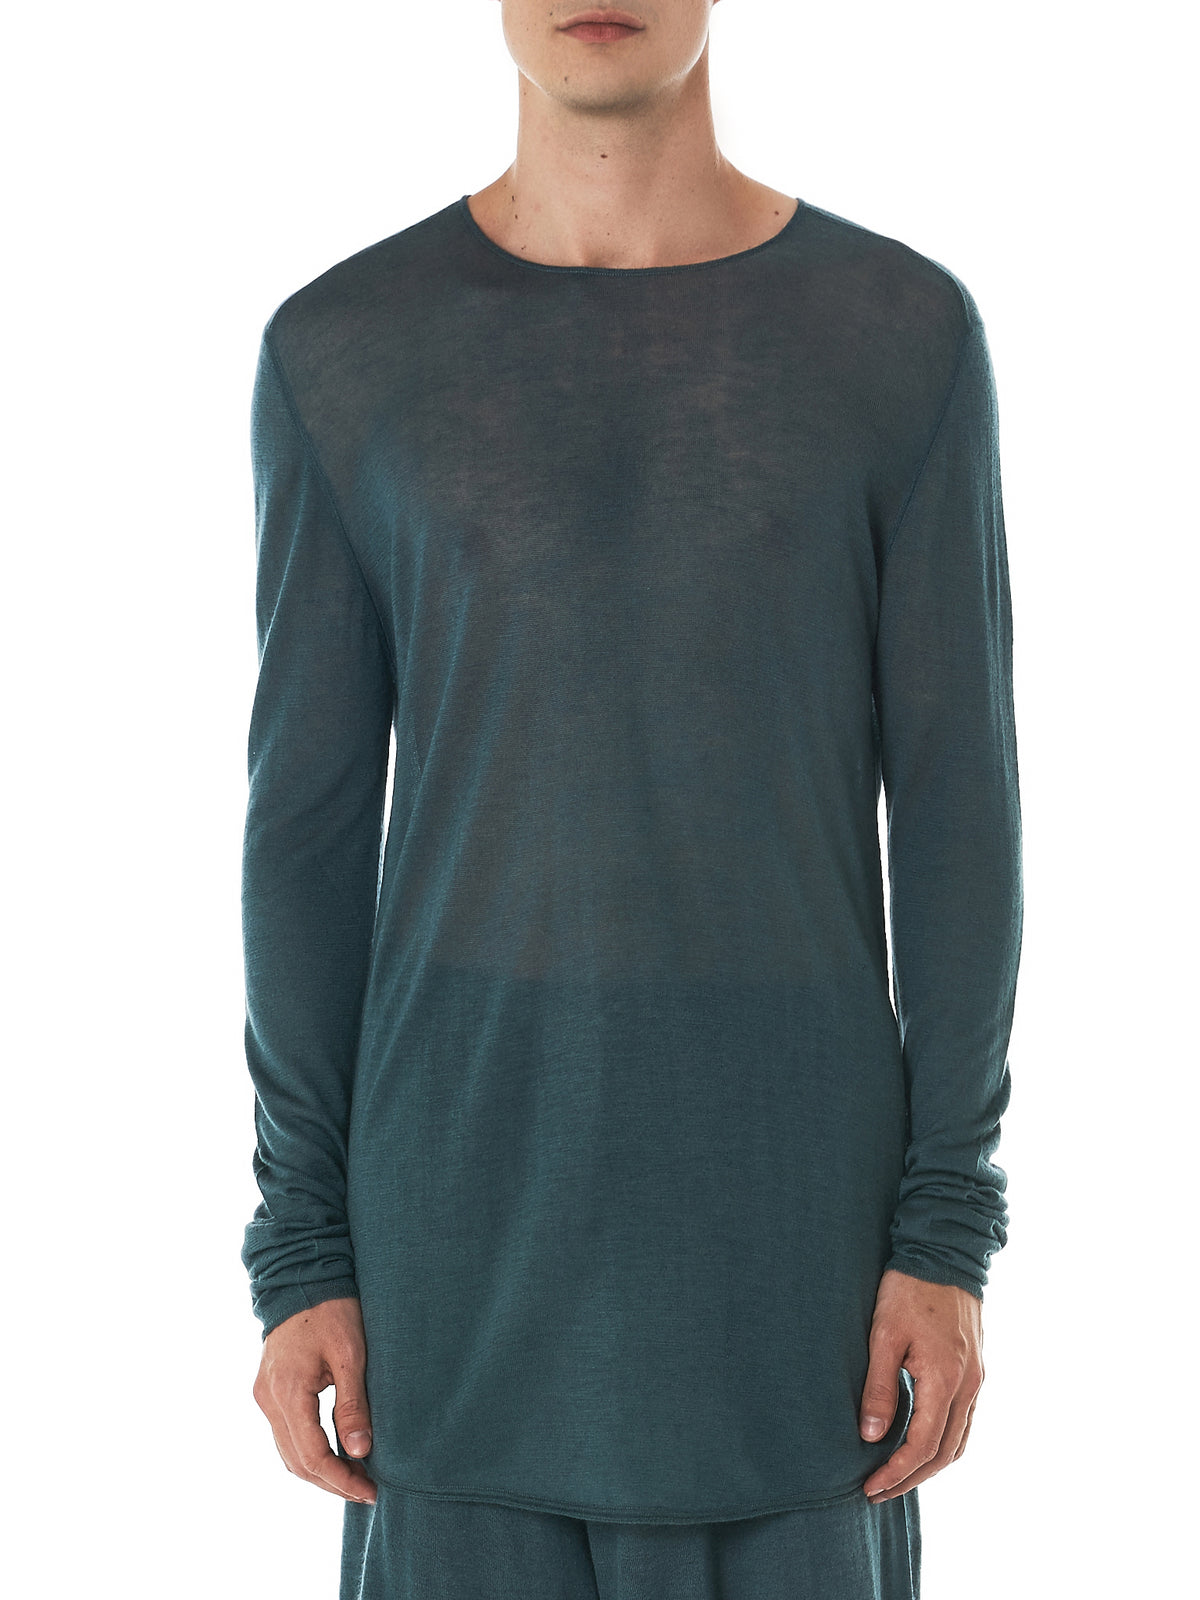 Denis Colomb Knit Tee - Hlorenzo front